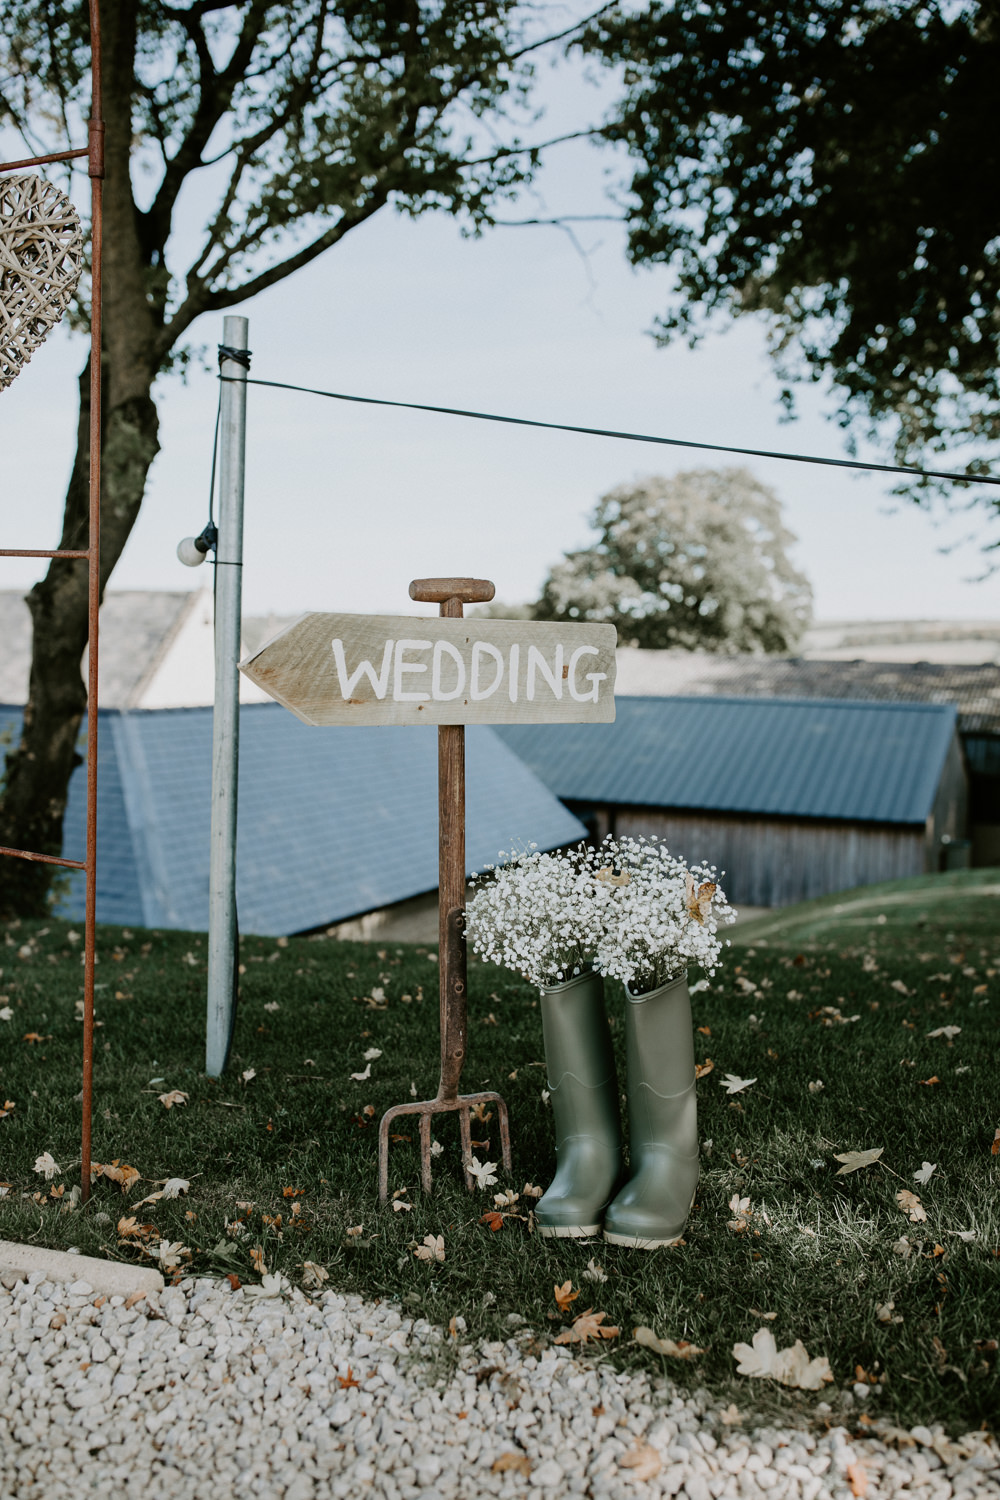 Wooden Sign Signage Garden Fork Welly Flowers Barn Upcote Wedding Siobhan Beales Photography